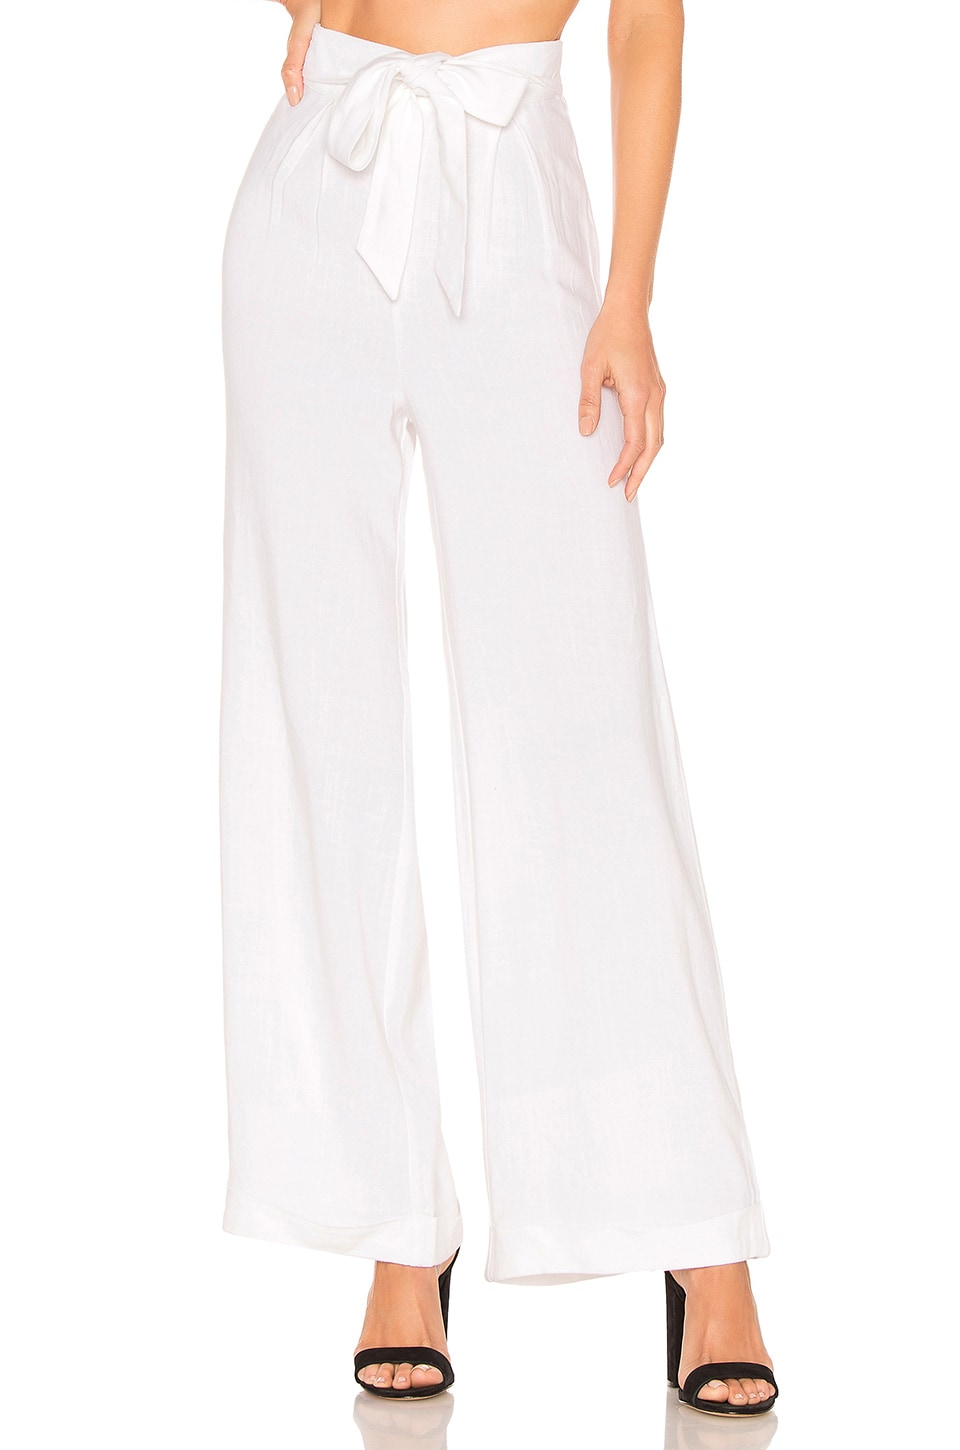 House of Harlow 1960 X REVOLVE Kiza Pant in Ivory